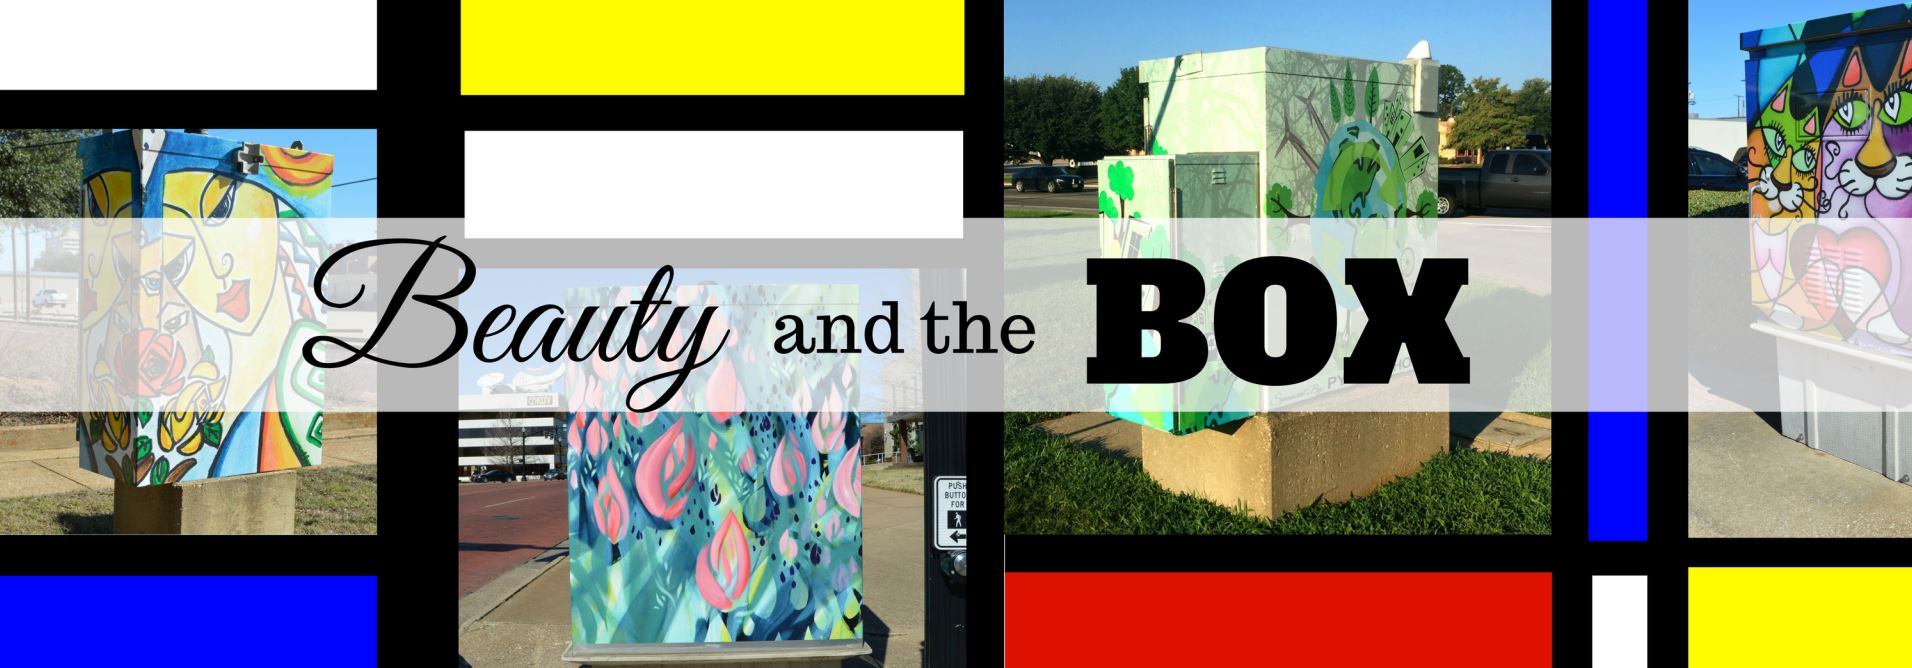 Beauty and the Box banner